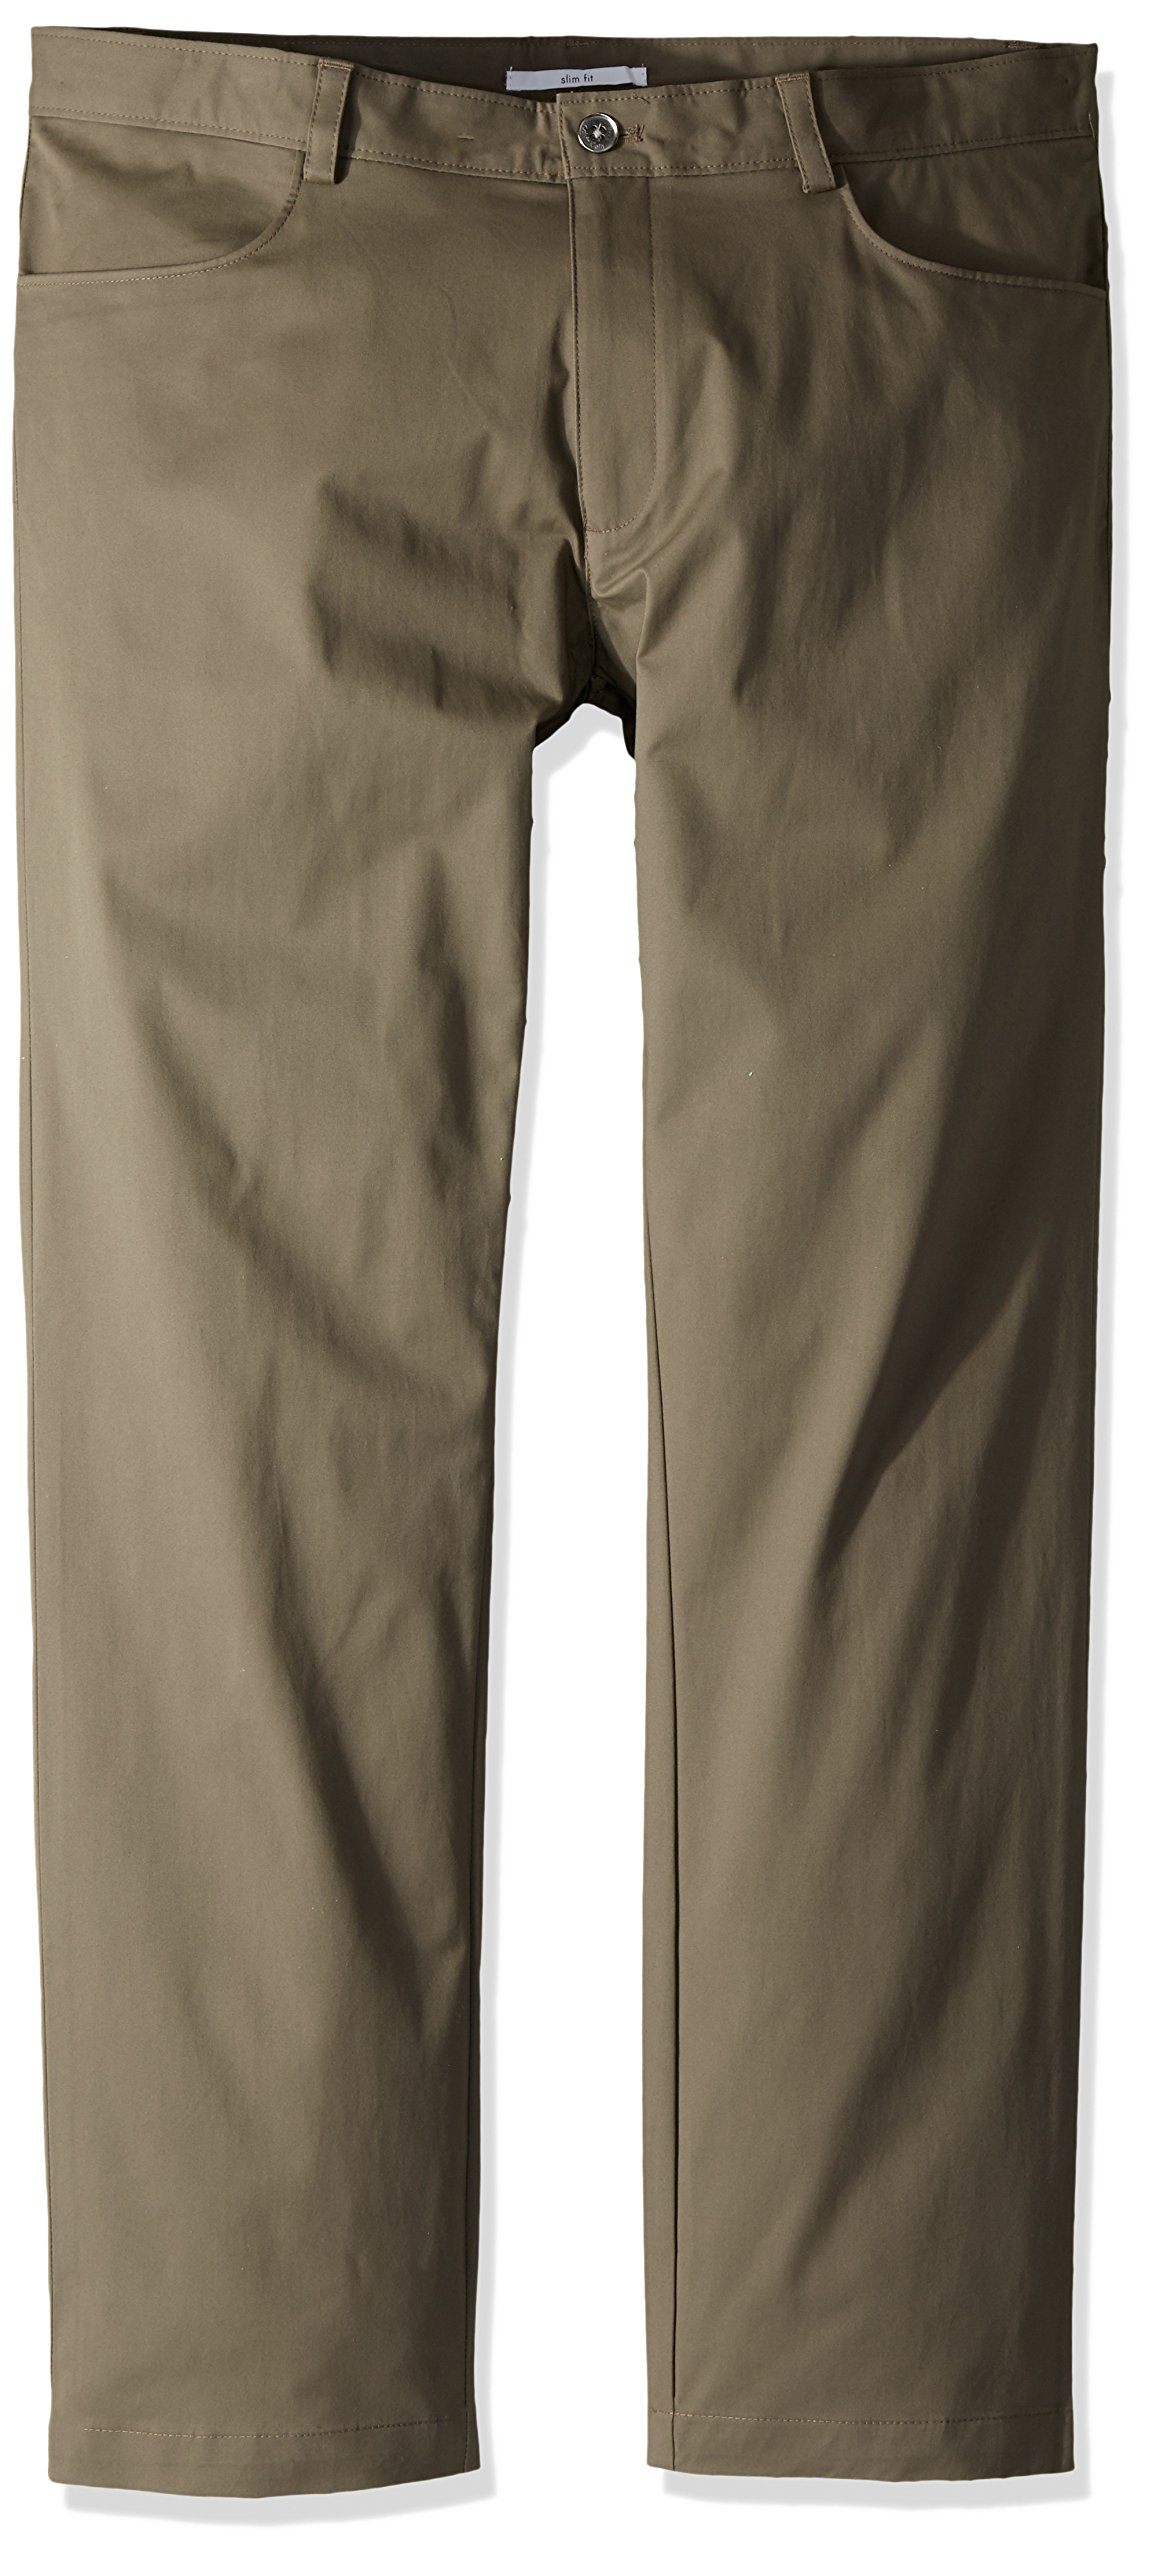 Calvin Klein Men's Slim Fit 4-Pocket Stretch Sateen Pant,Stone Pony,38x30